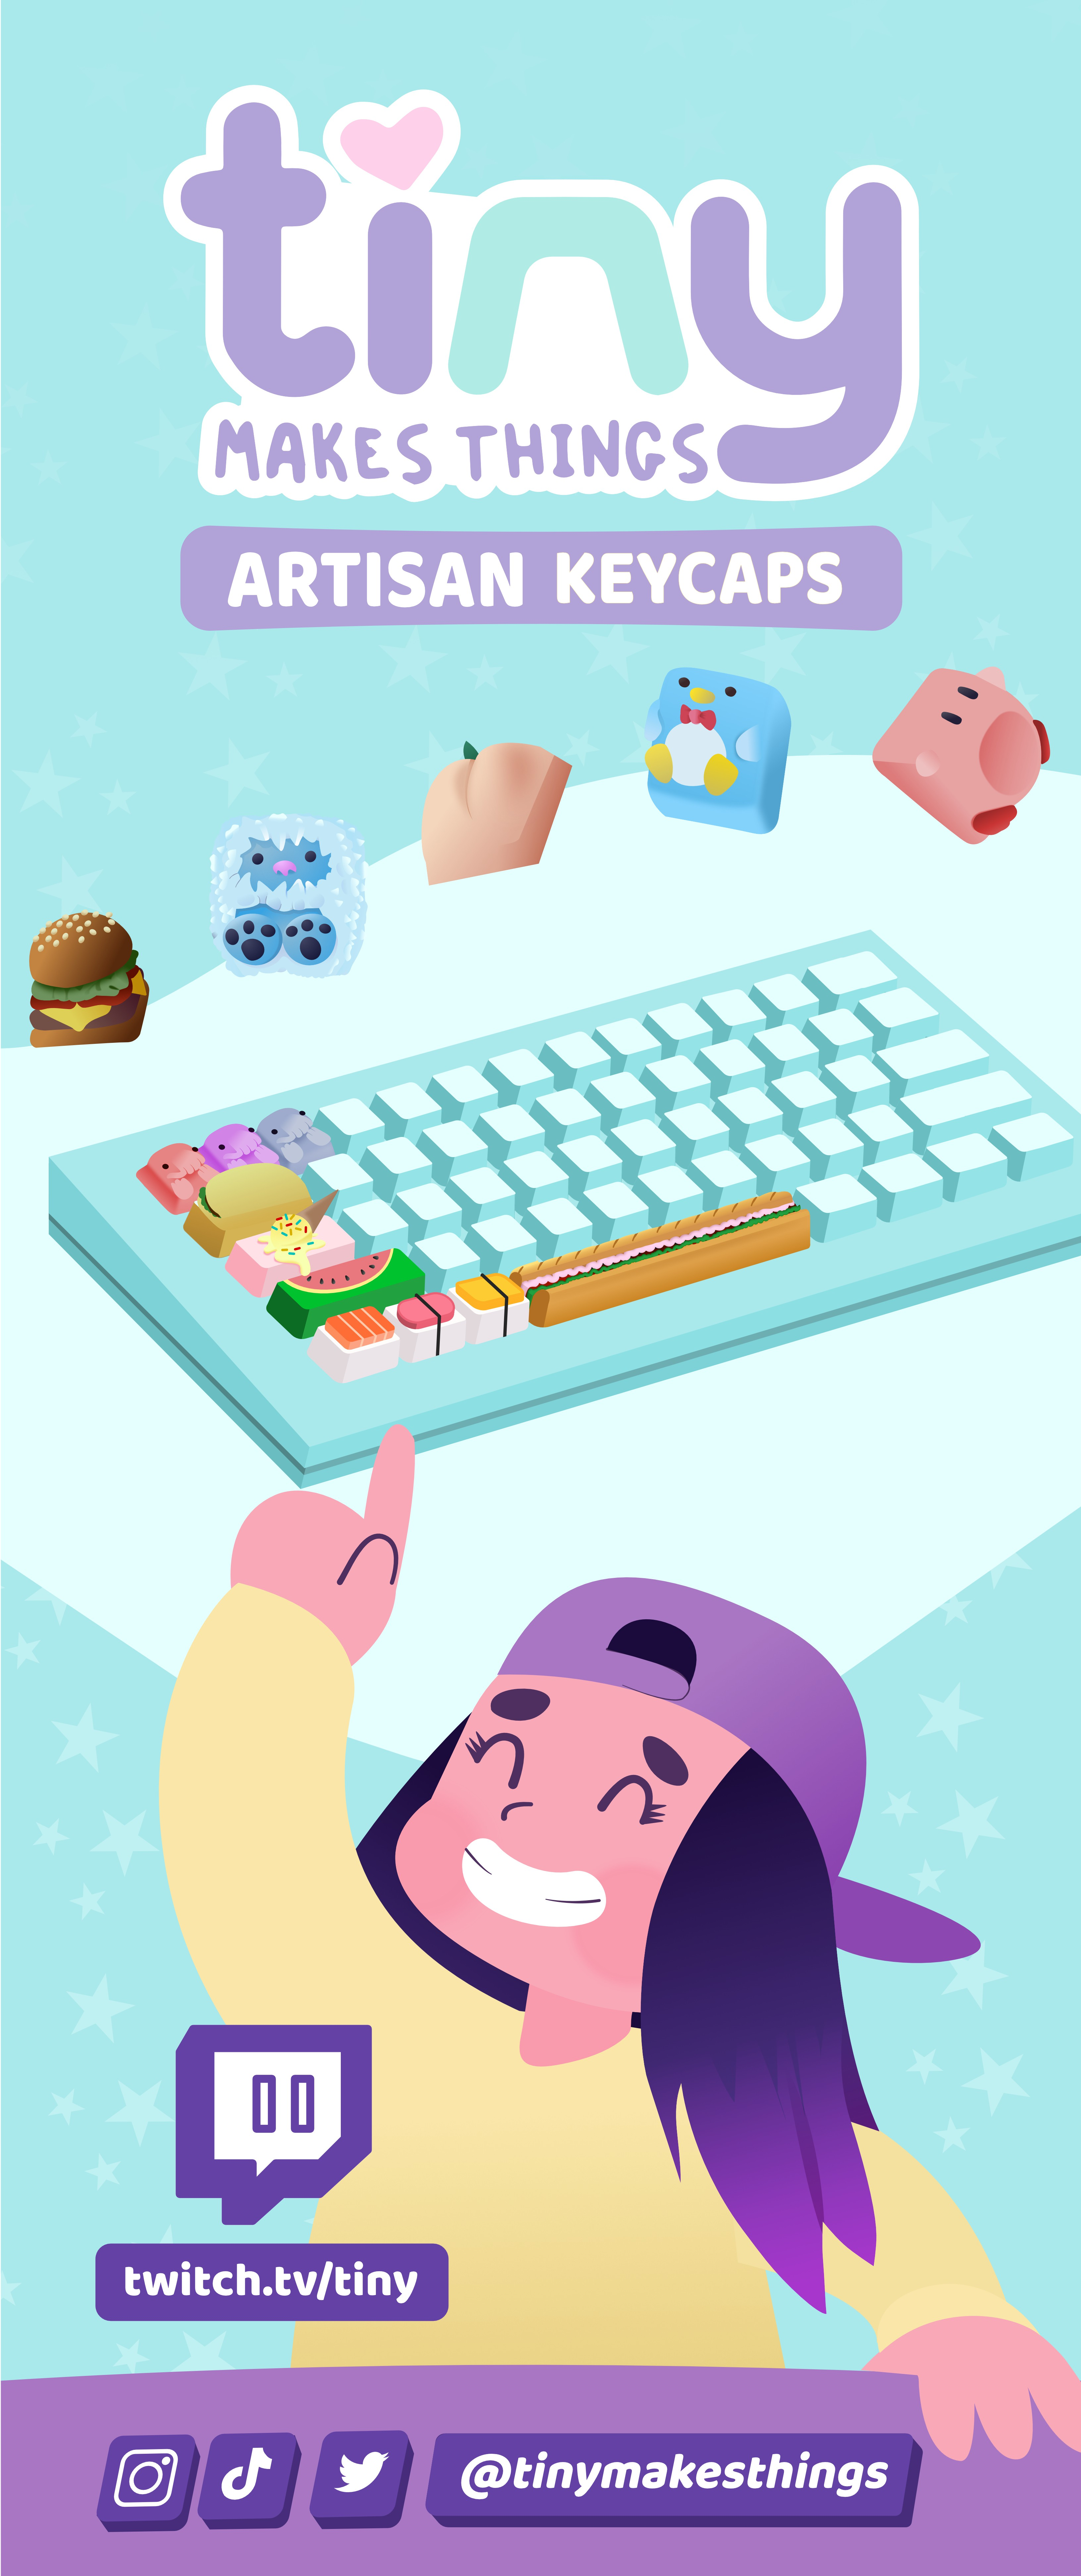 Design a Cute, Playful, Feminine retractable banner for a keycap maker (for keyboards)!!